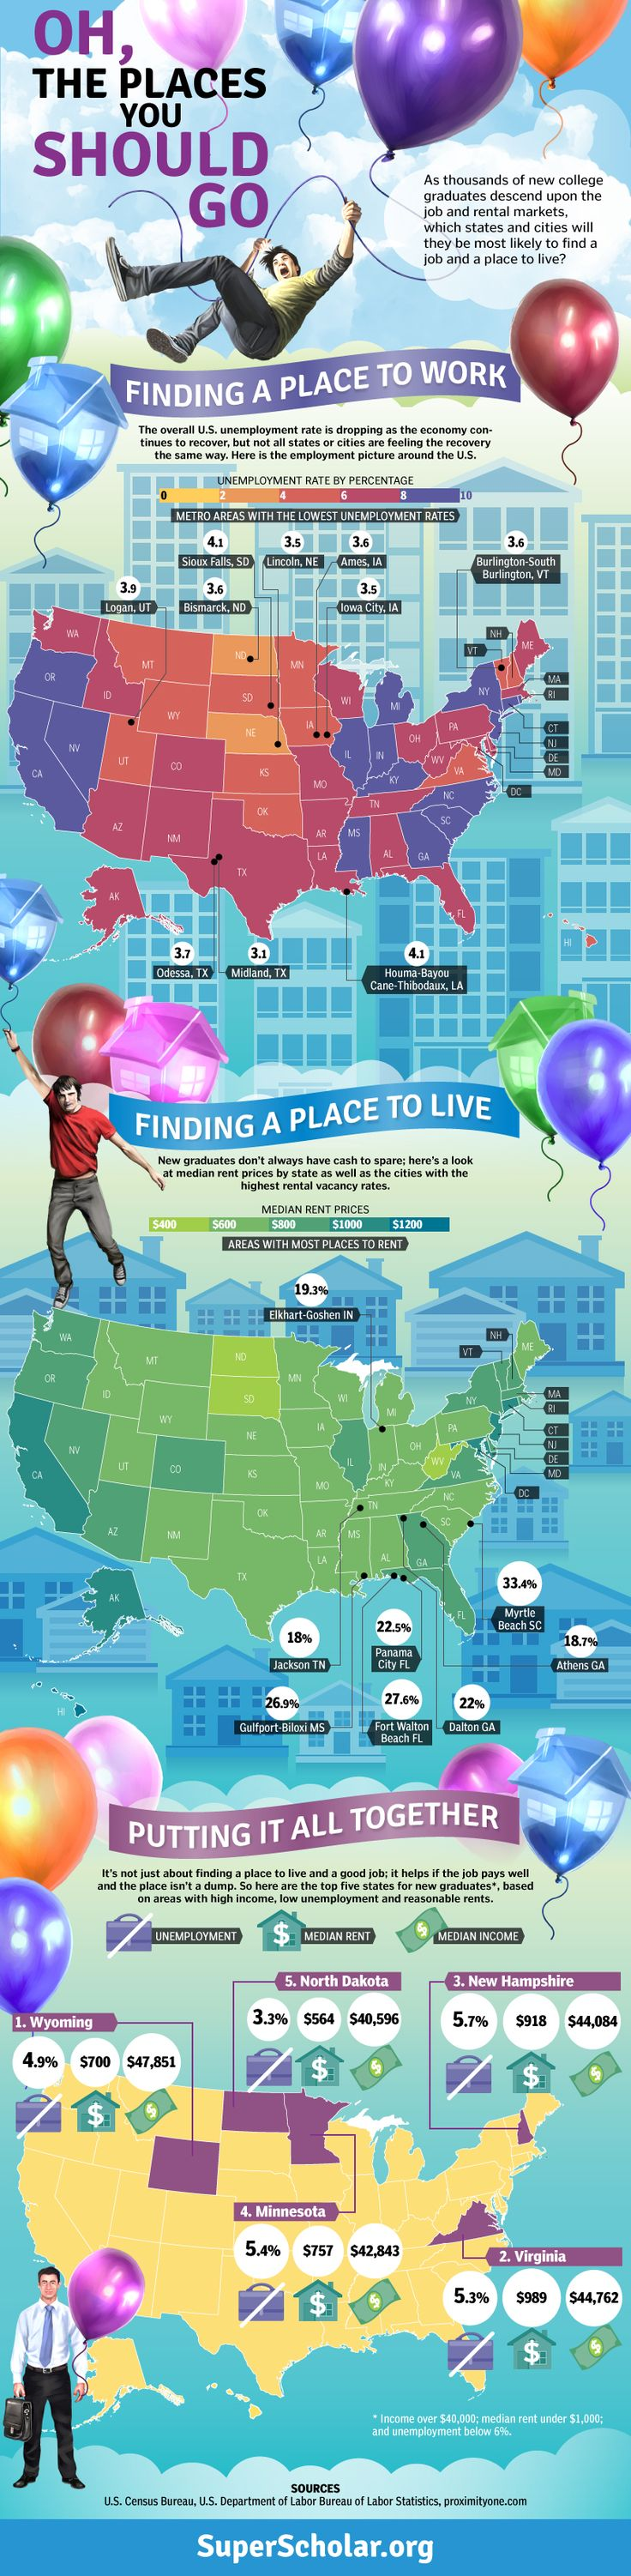 17 best images about job search strategies oh the places you should go where are the best places to look for